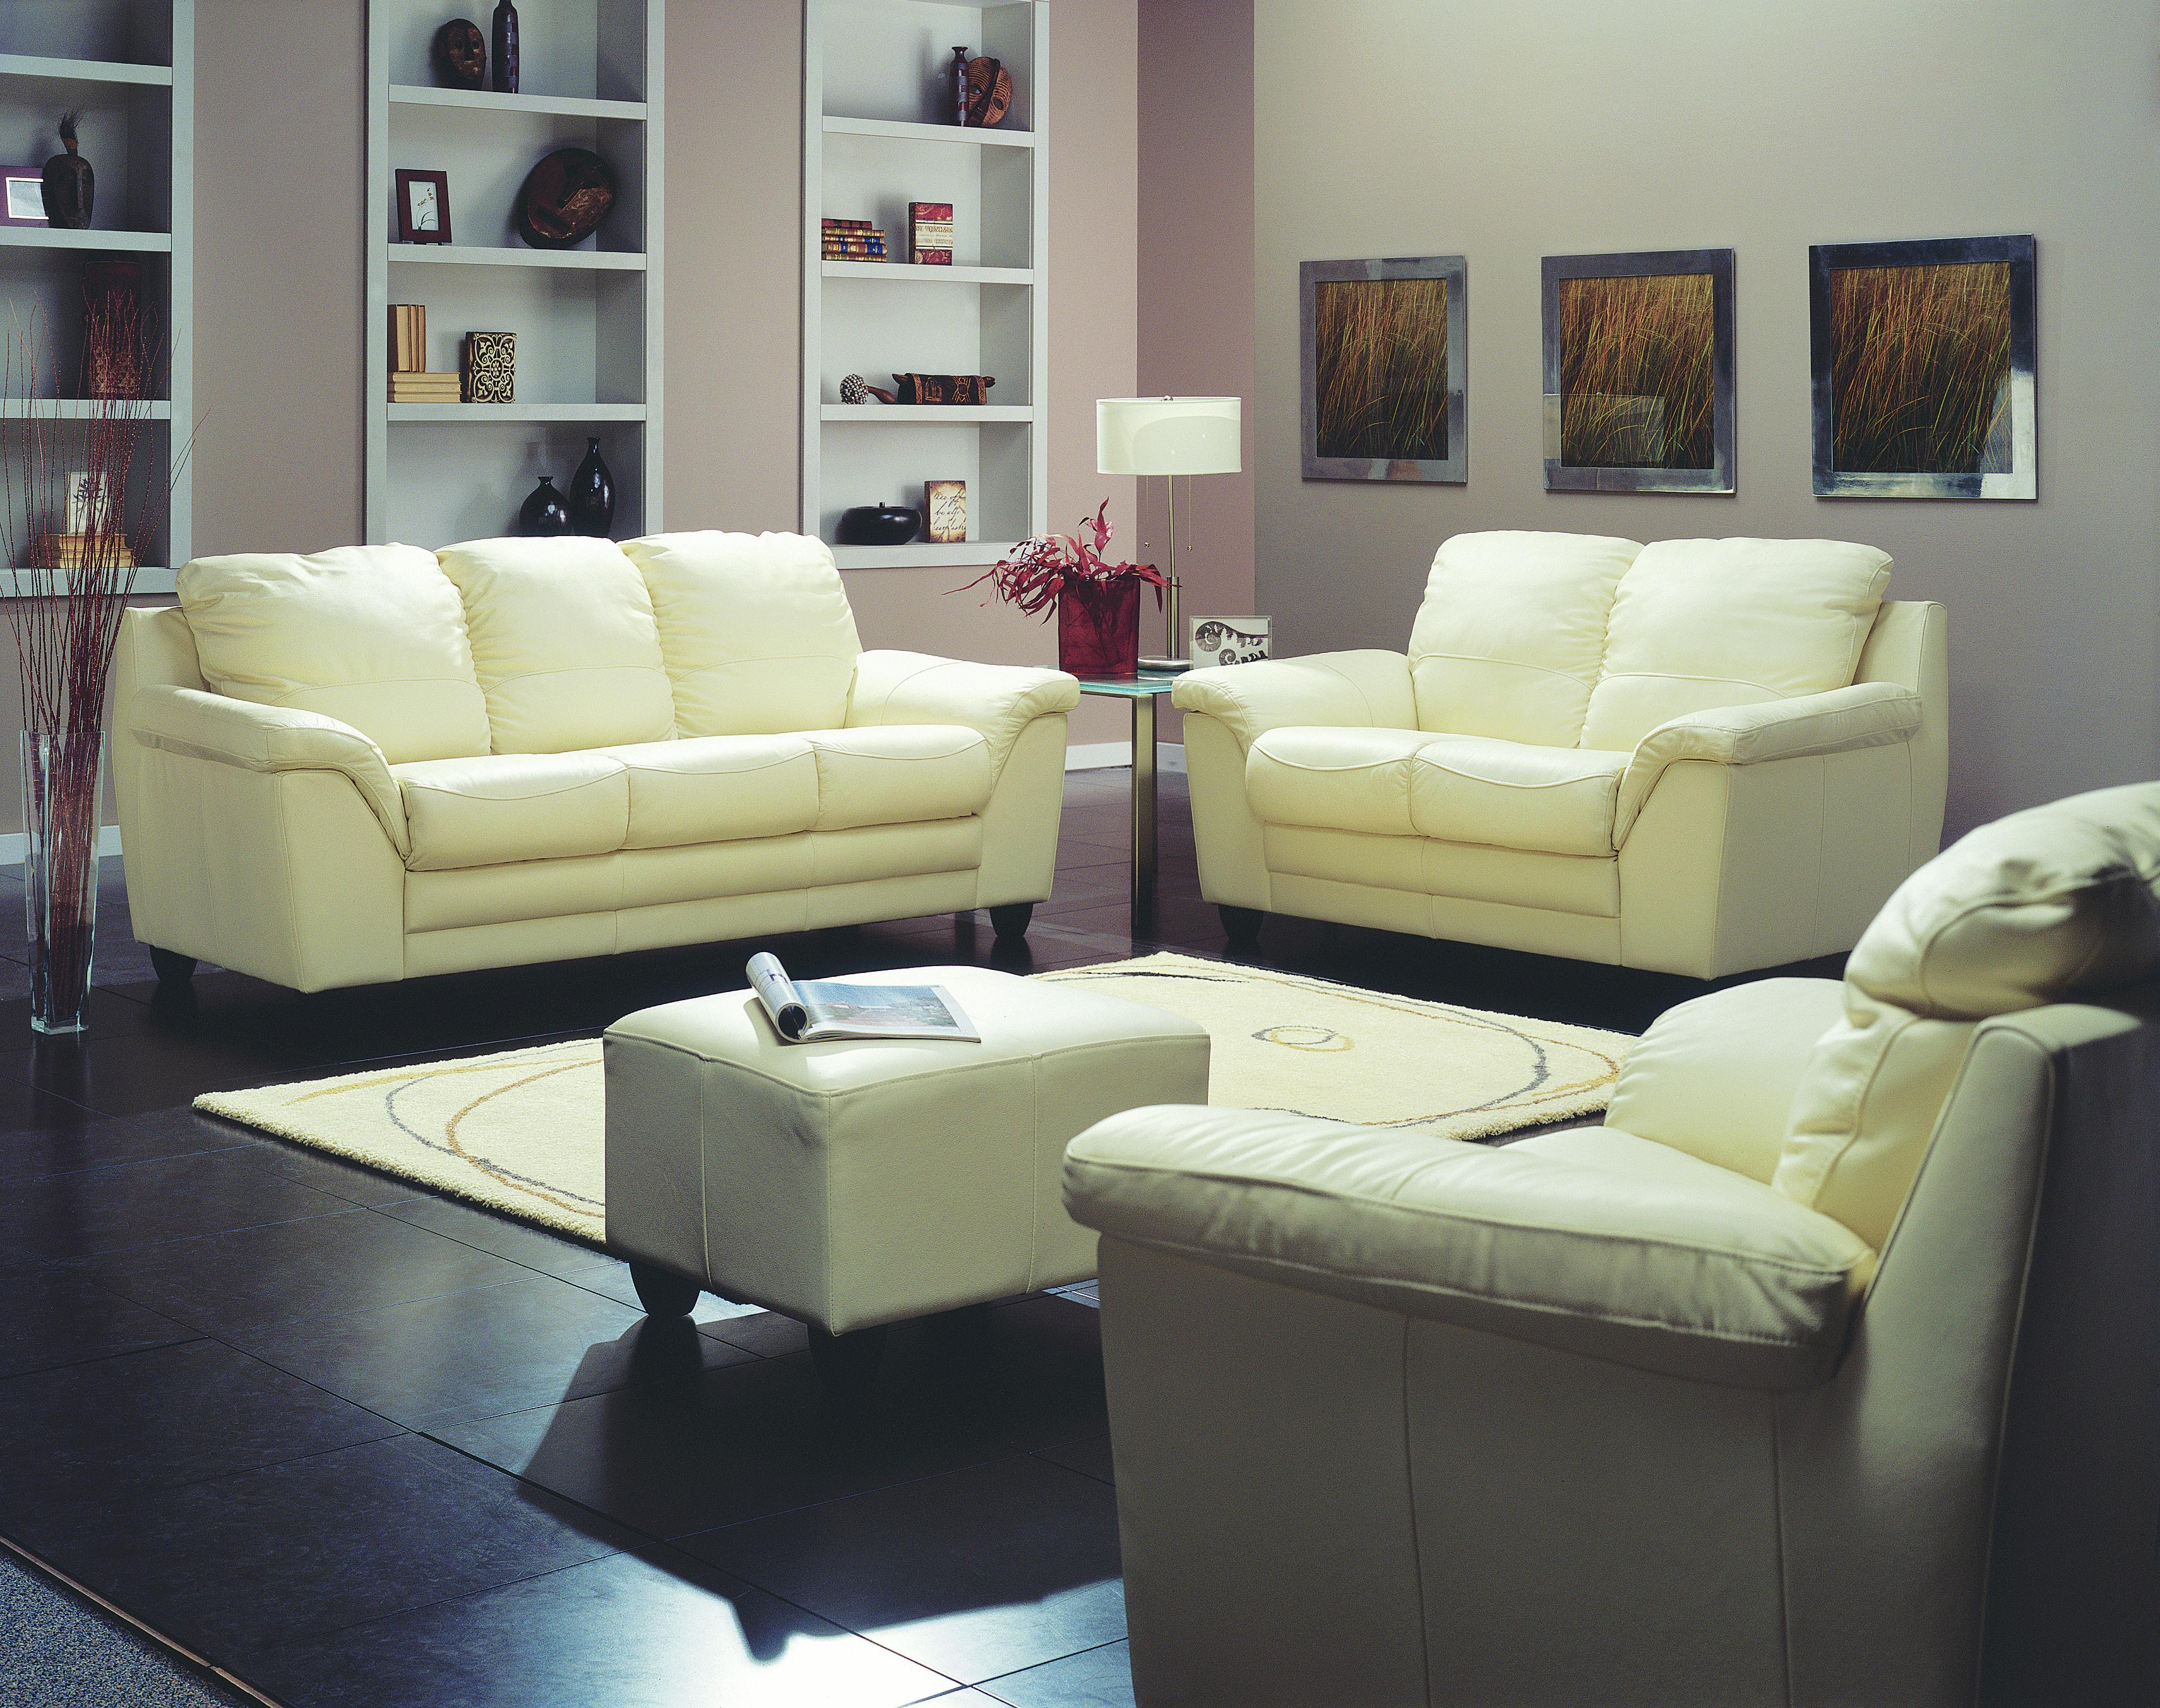 palliser chair and ottoman custom bean bag chairs canada sirus 77594 04 casual with rounded block